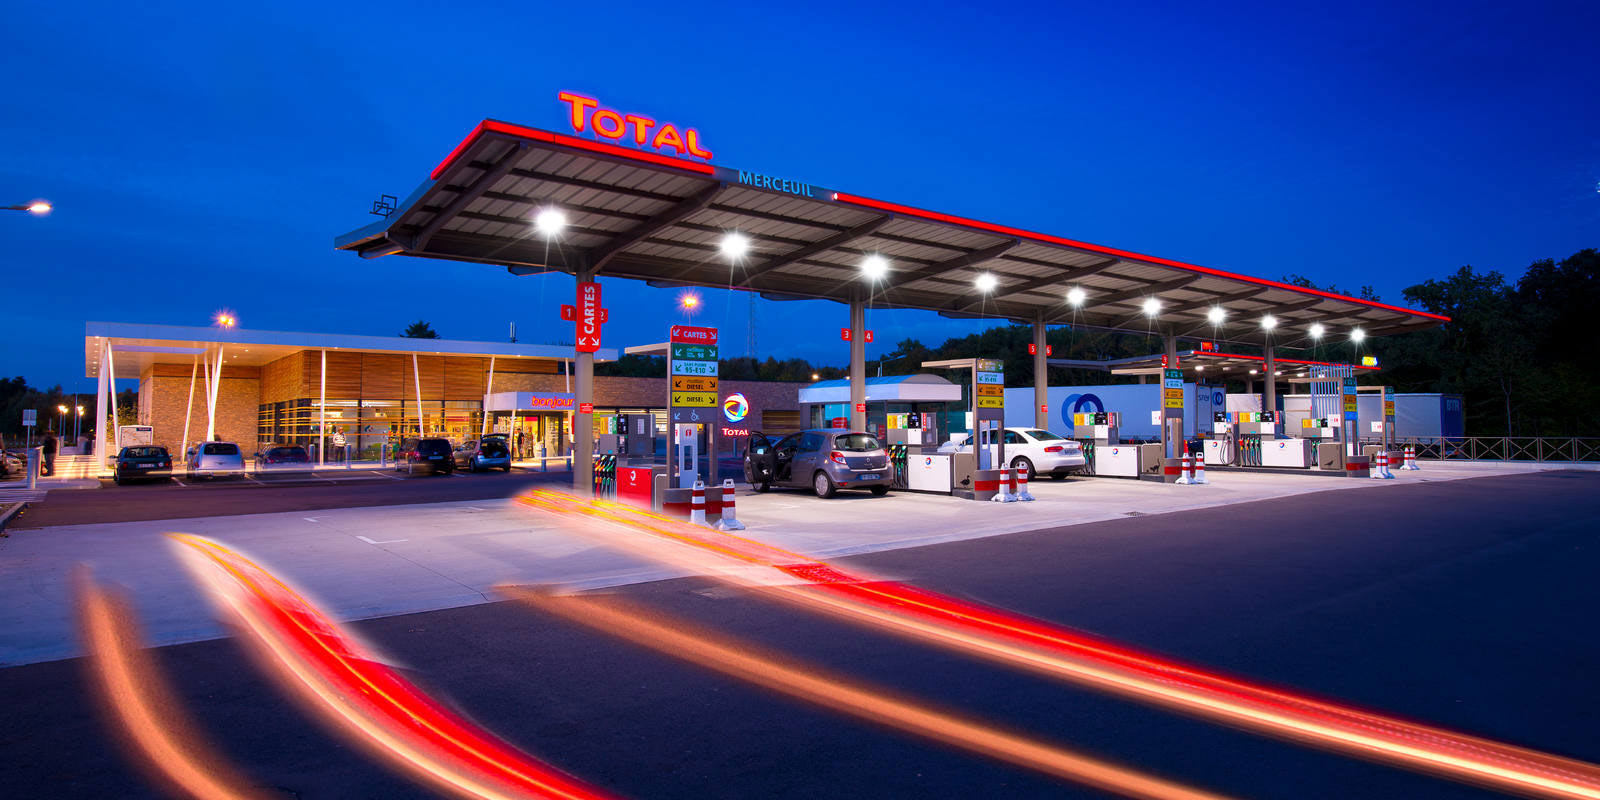 Total expands its EV-charging network in Big Oil's latest foray into electric vehicles